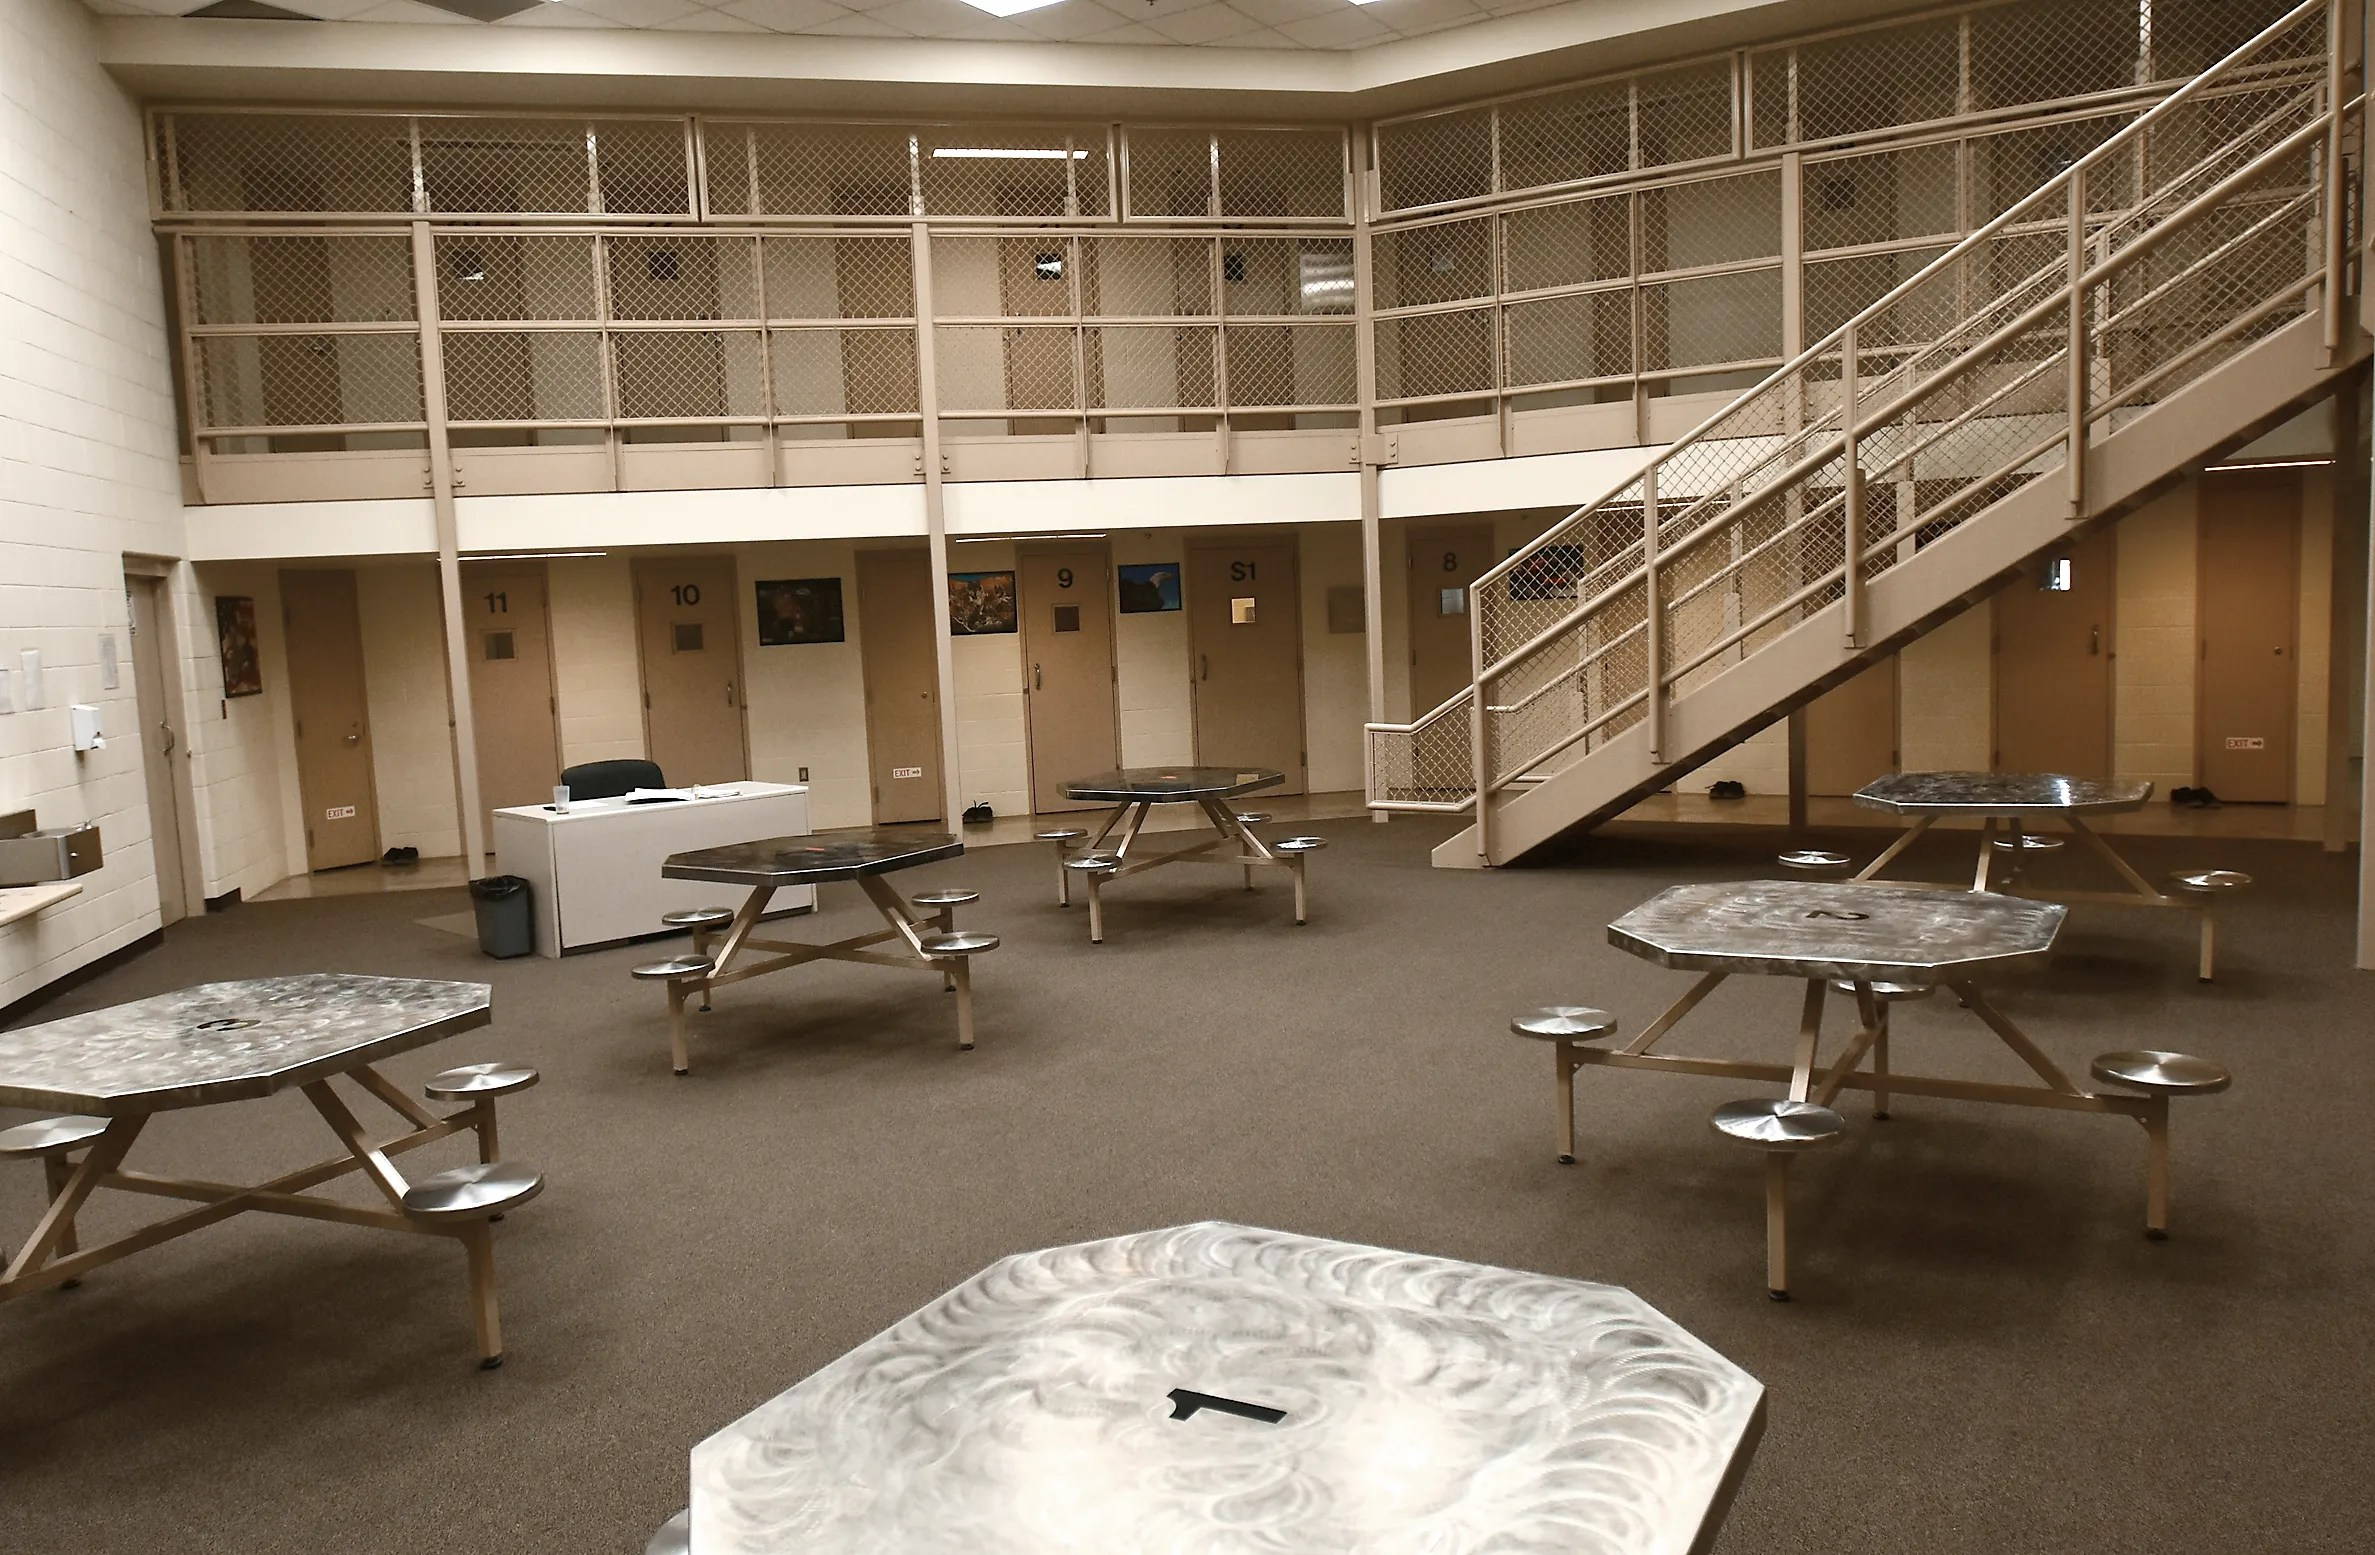 One of the pods at the Portage-Geauga Juvenile Justice Center.